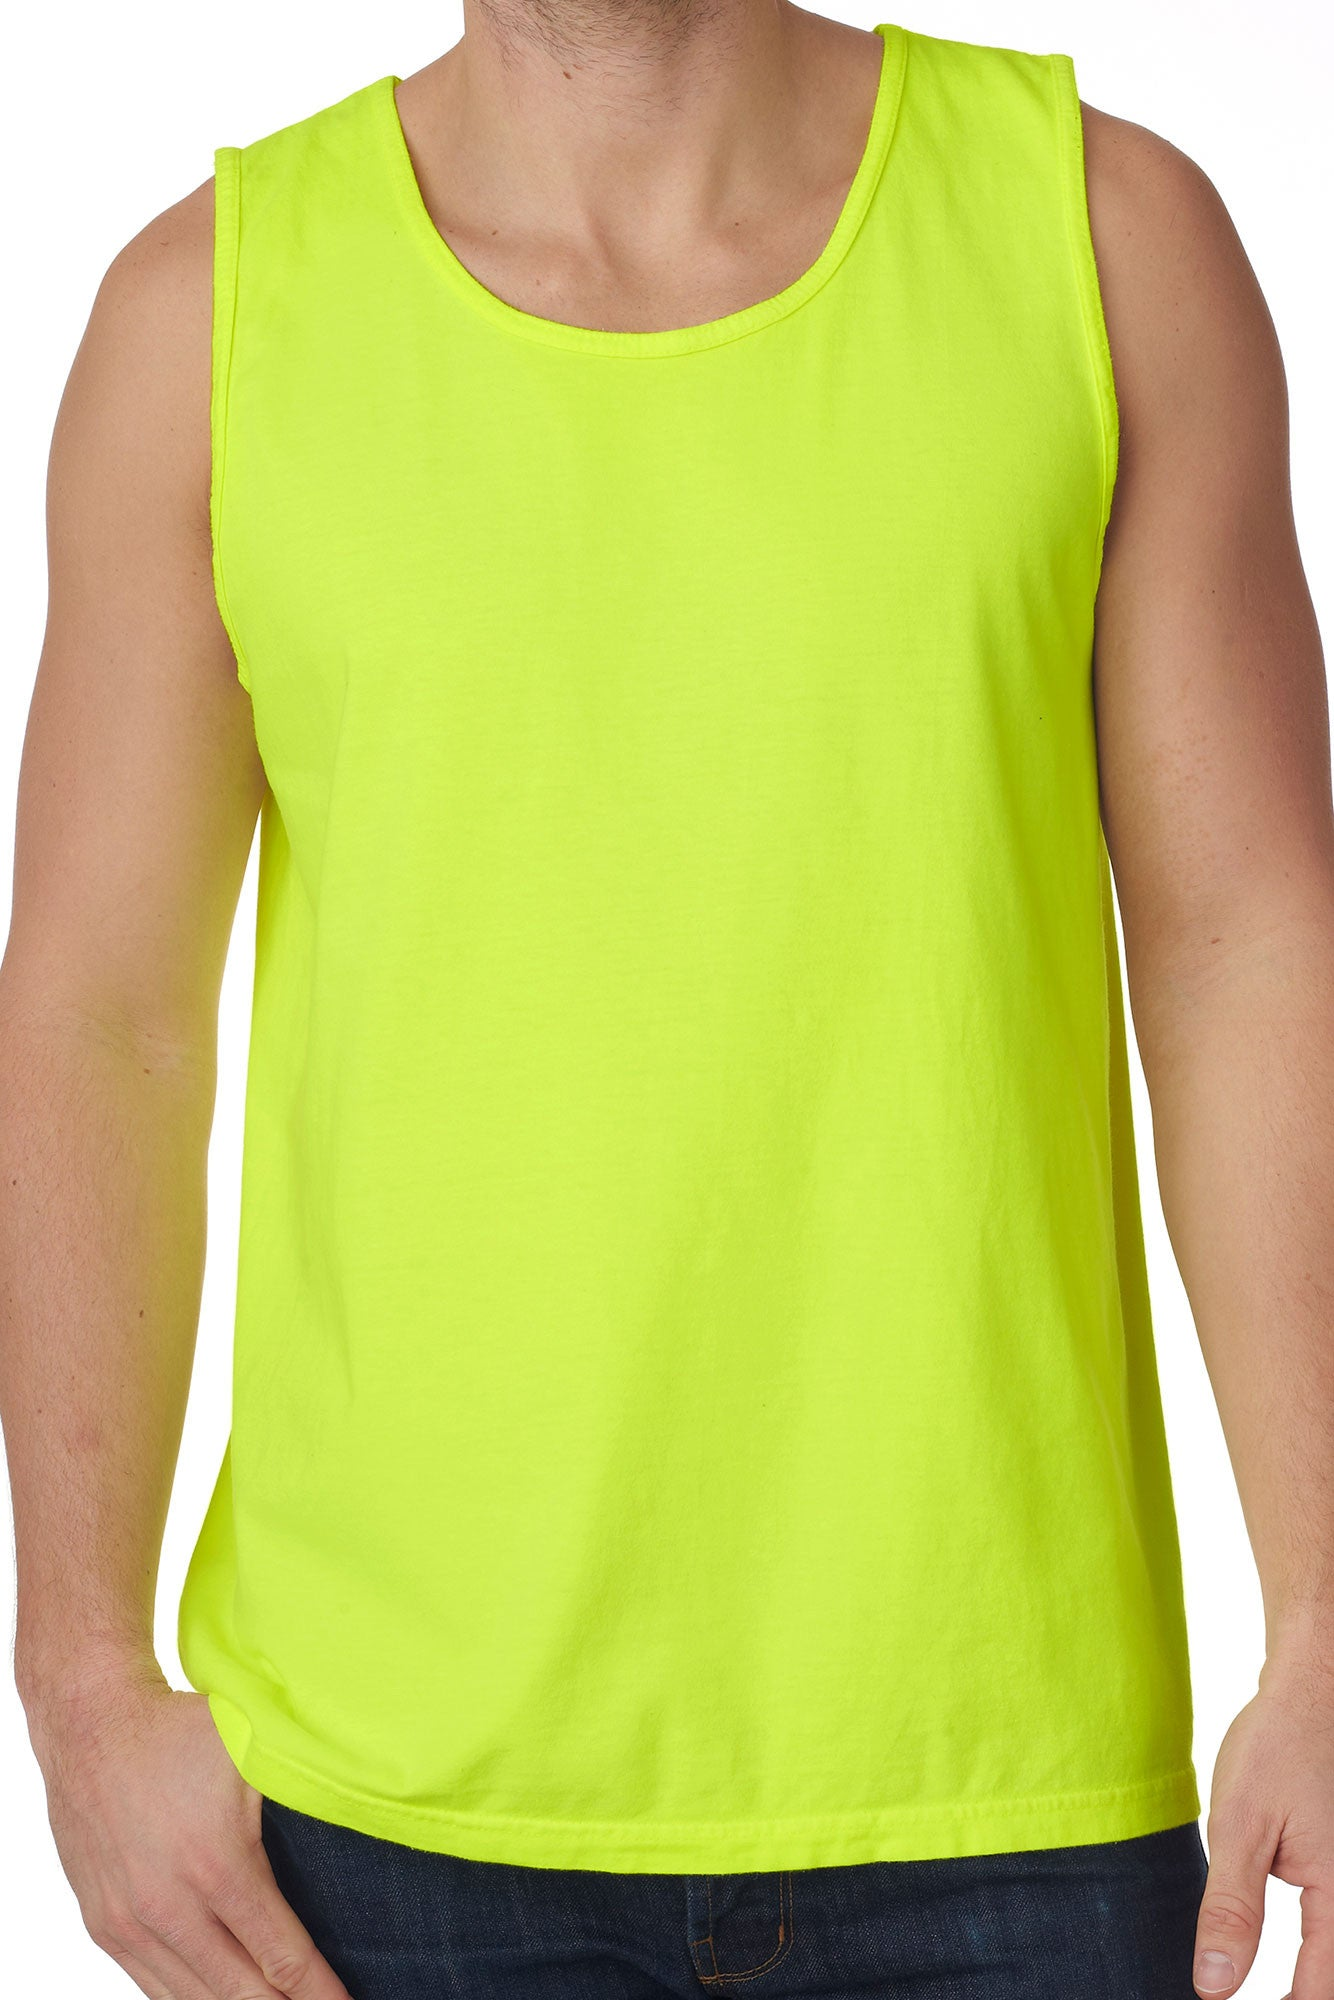 c162b48f981 Shades of Green/Yellow Comfort Colors Cotton Tank Top *Personalize It